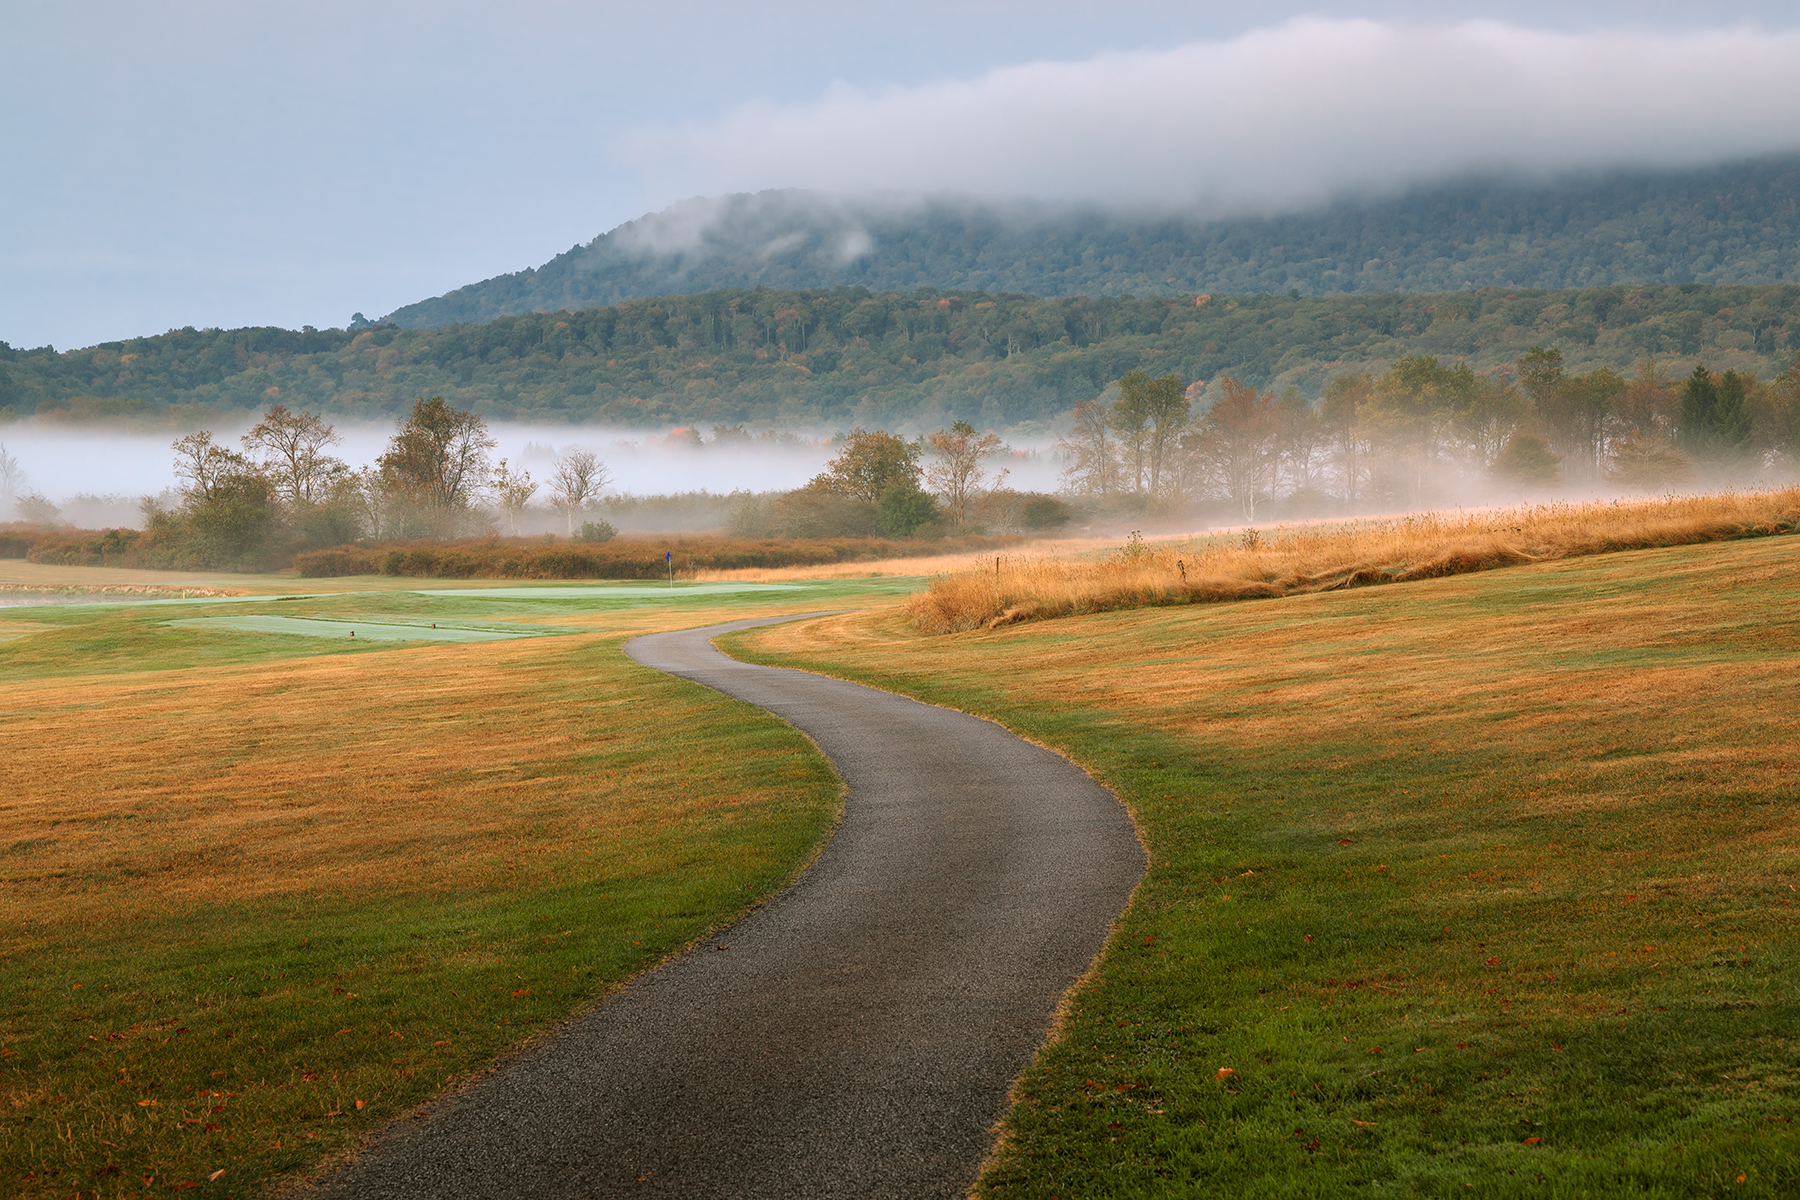 Misty dawn golf course - hdr photo